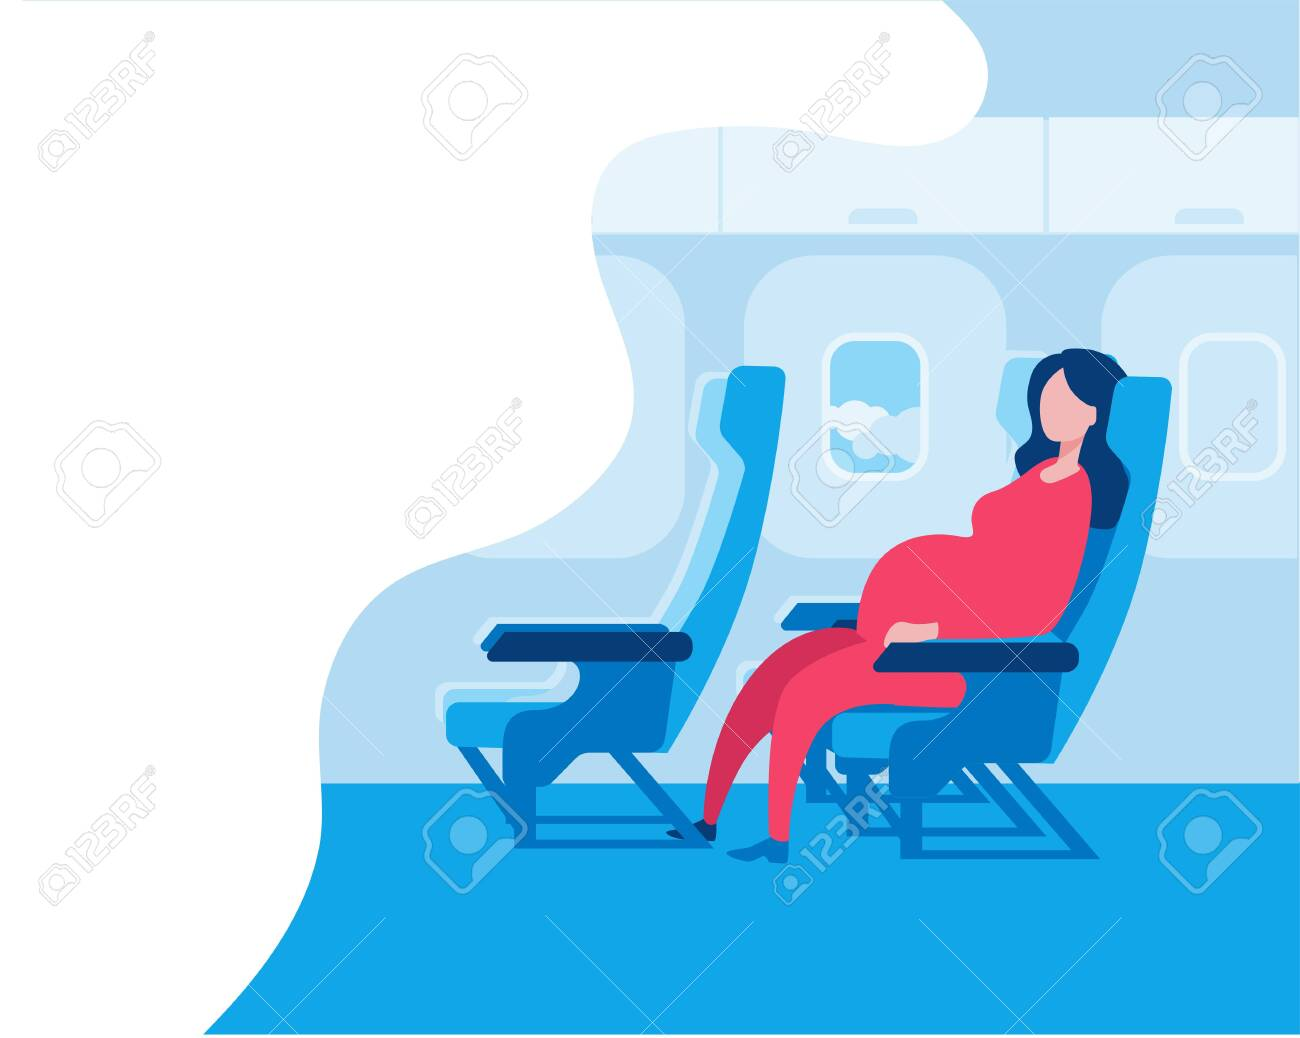 Pregnant woman sitting in an airplane seat. Vector illustration in a flat style on the theme of travel during pregnancy. Red-blue color scheme. - 132600413